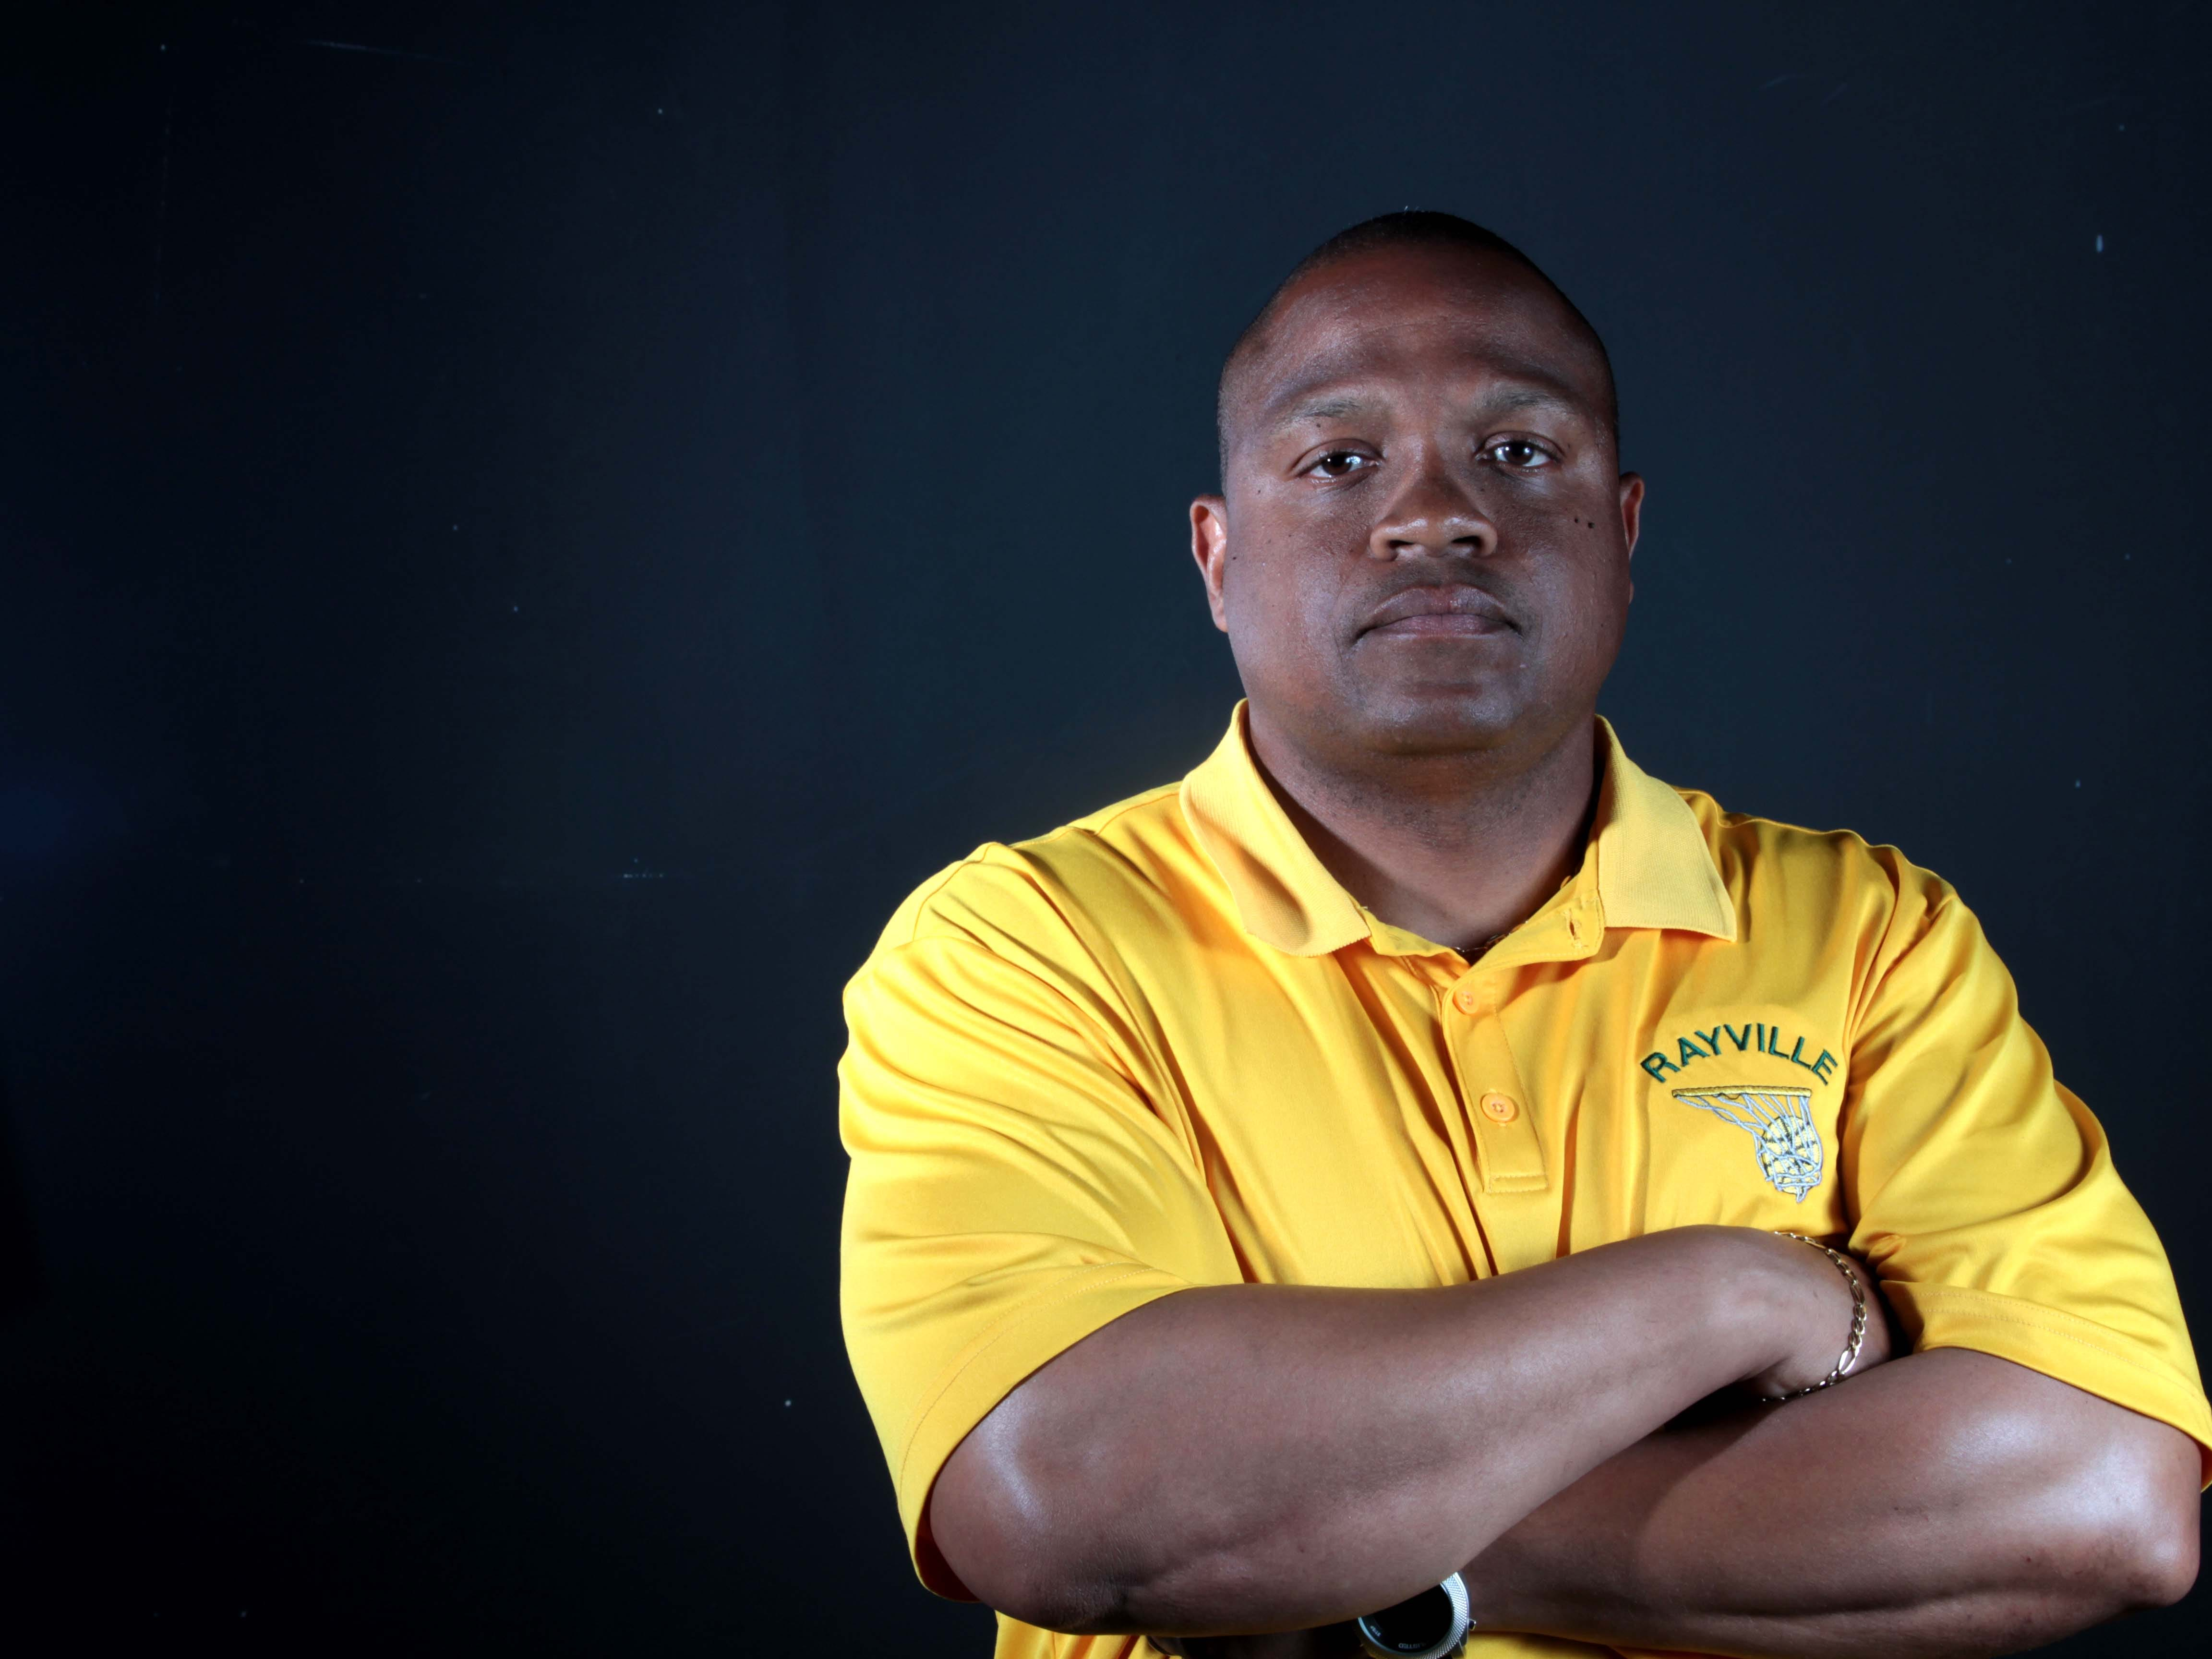 Rayville coach Damon West is the All-NELA Big School Coach of the Year